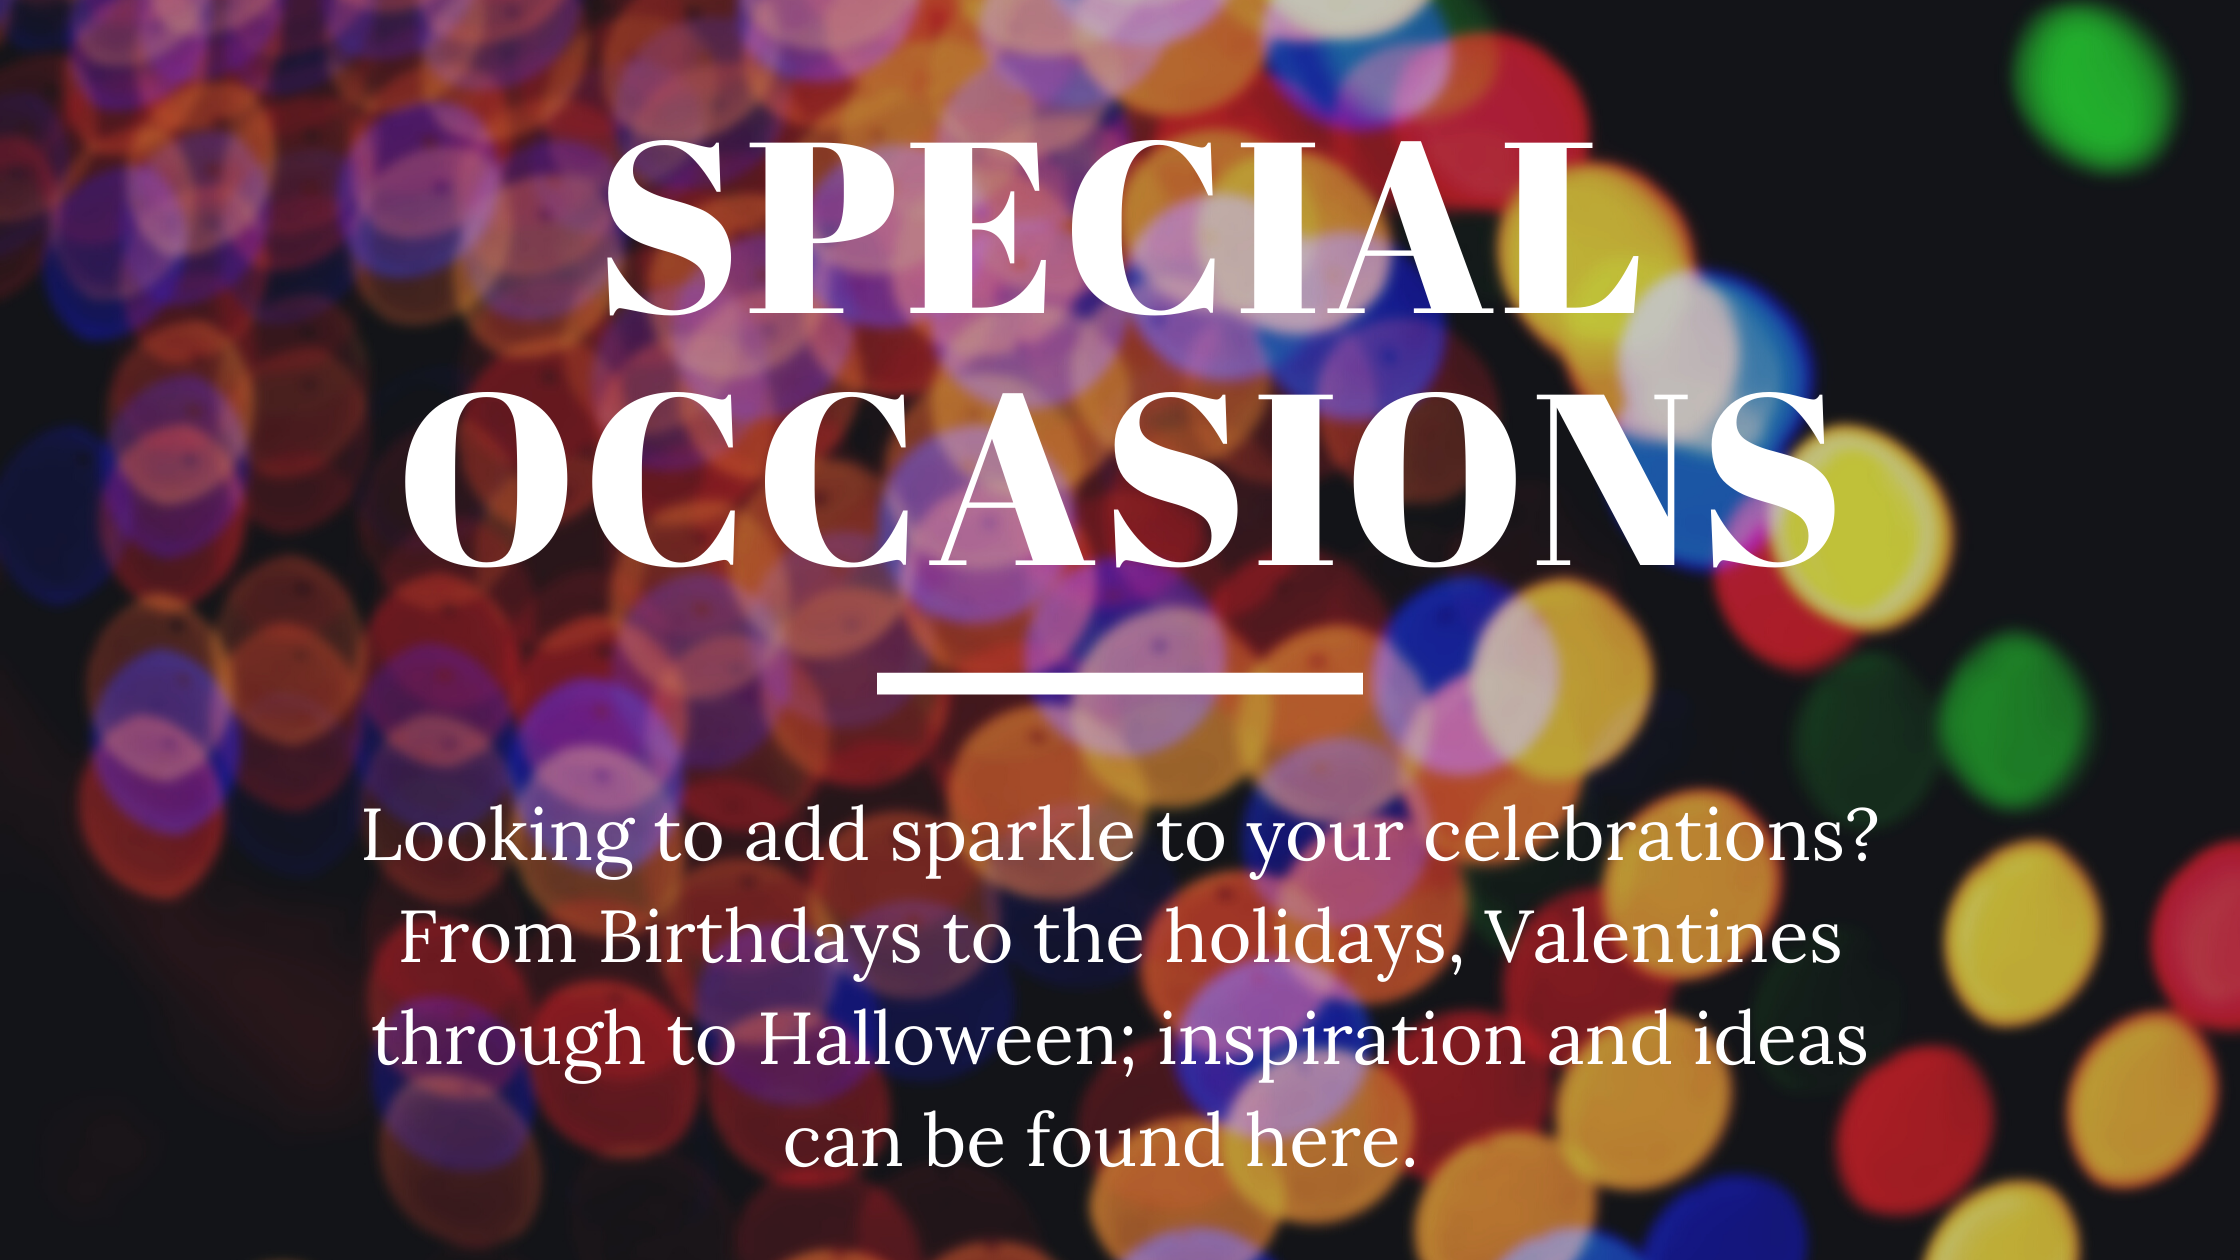 Special occasions - looking to add sparkle to your celebrations? From Birthdays to the holidays, from Valentines through to Halloween; inspiration and ideas can be found here.